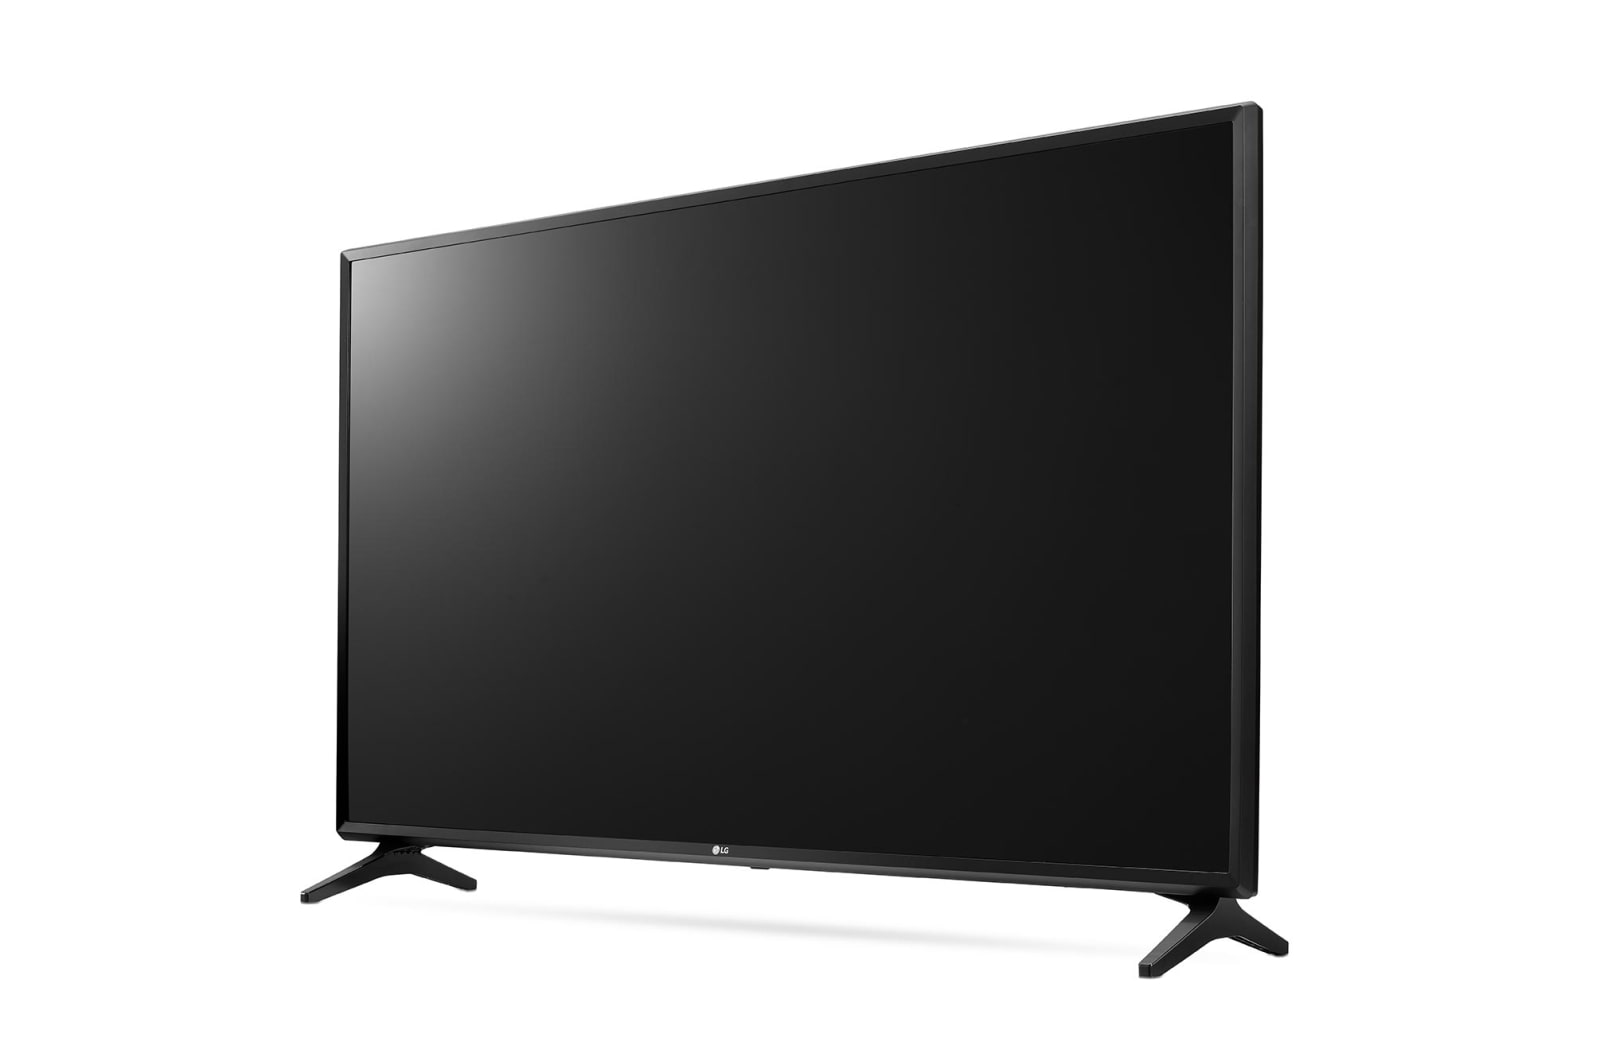 43 Inch Smart TV With WebOS